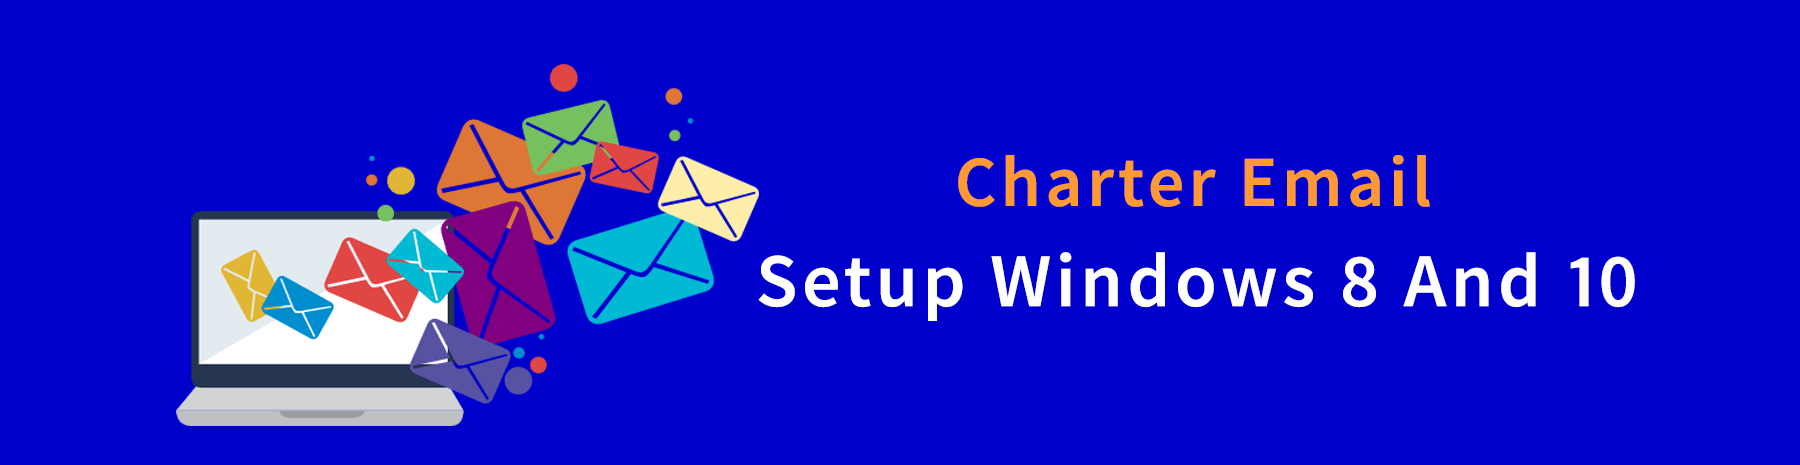 Charter-Email-Setup-Windows-8-And-10